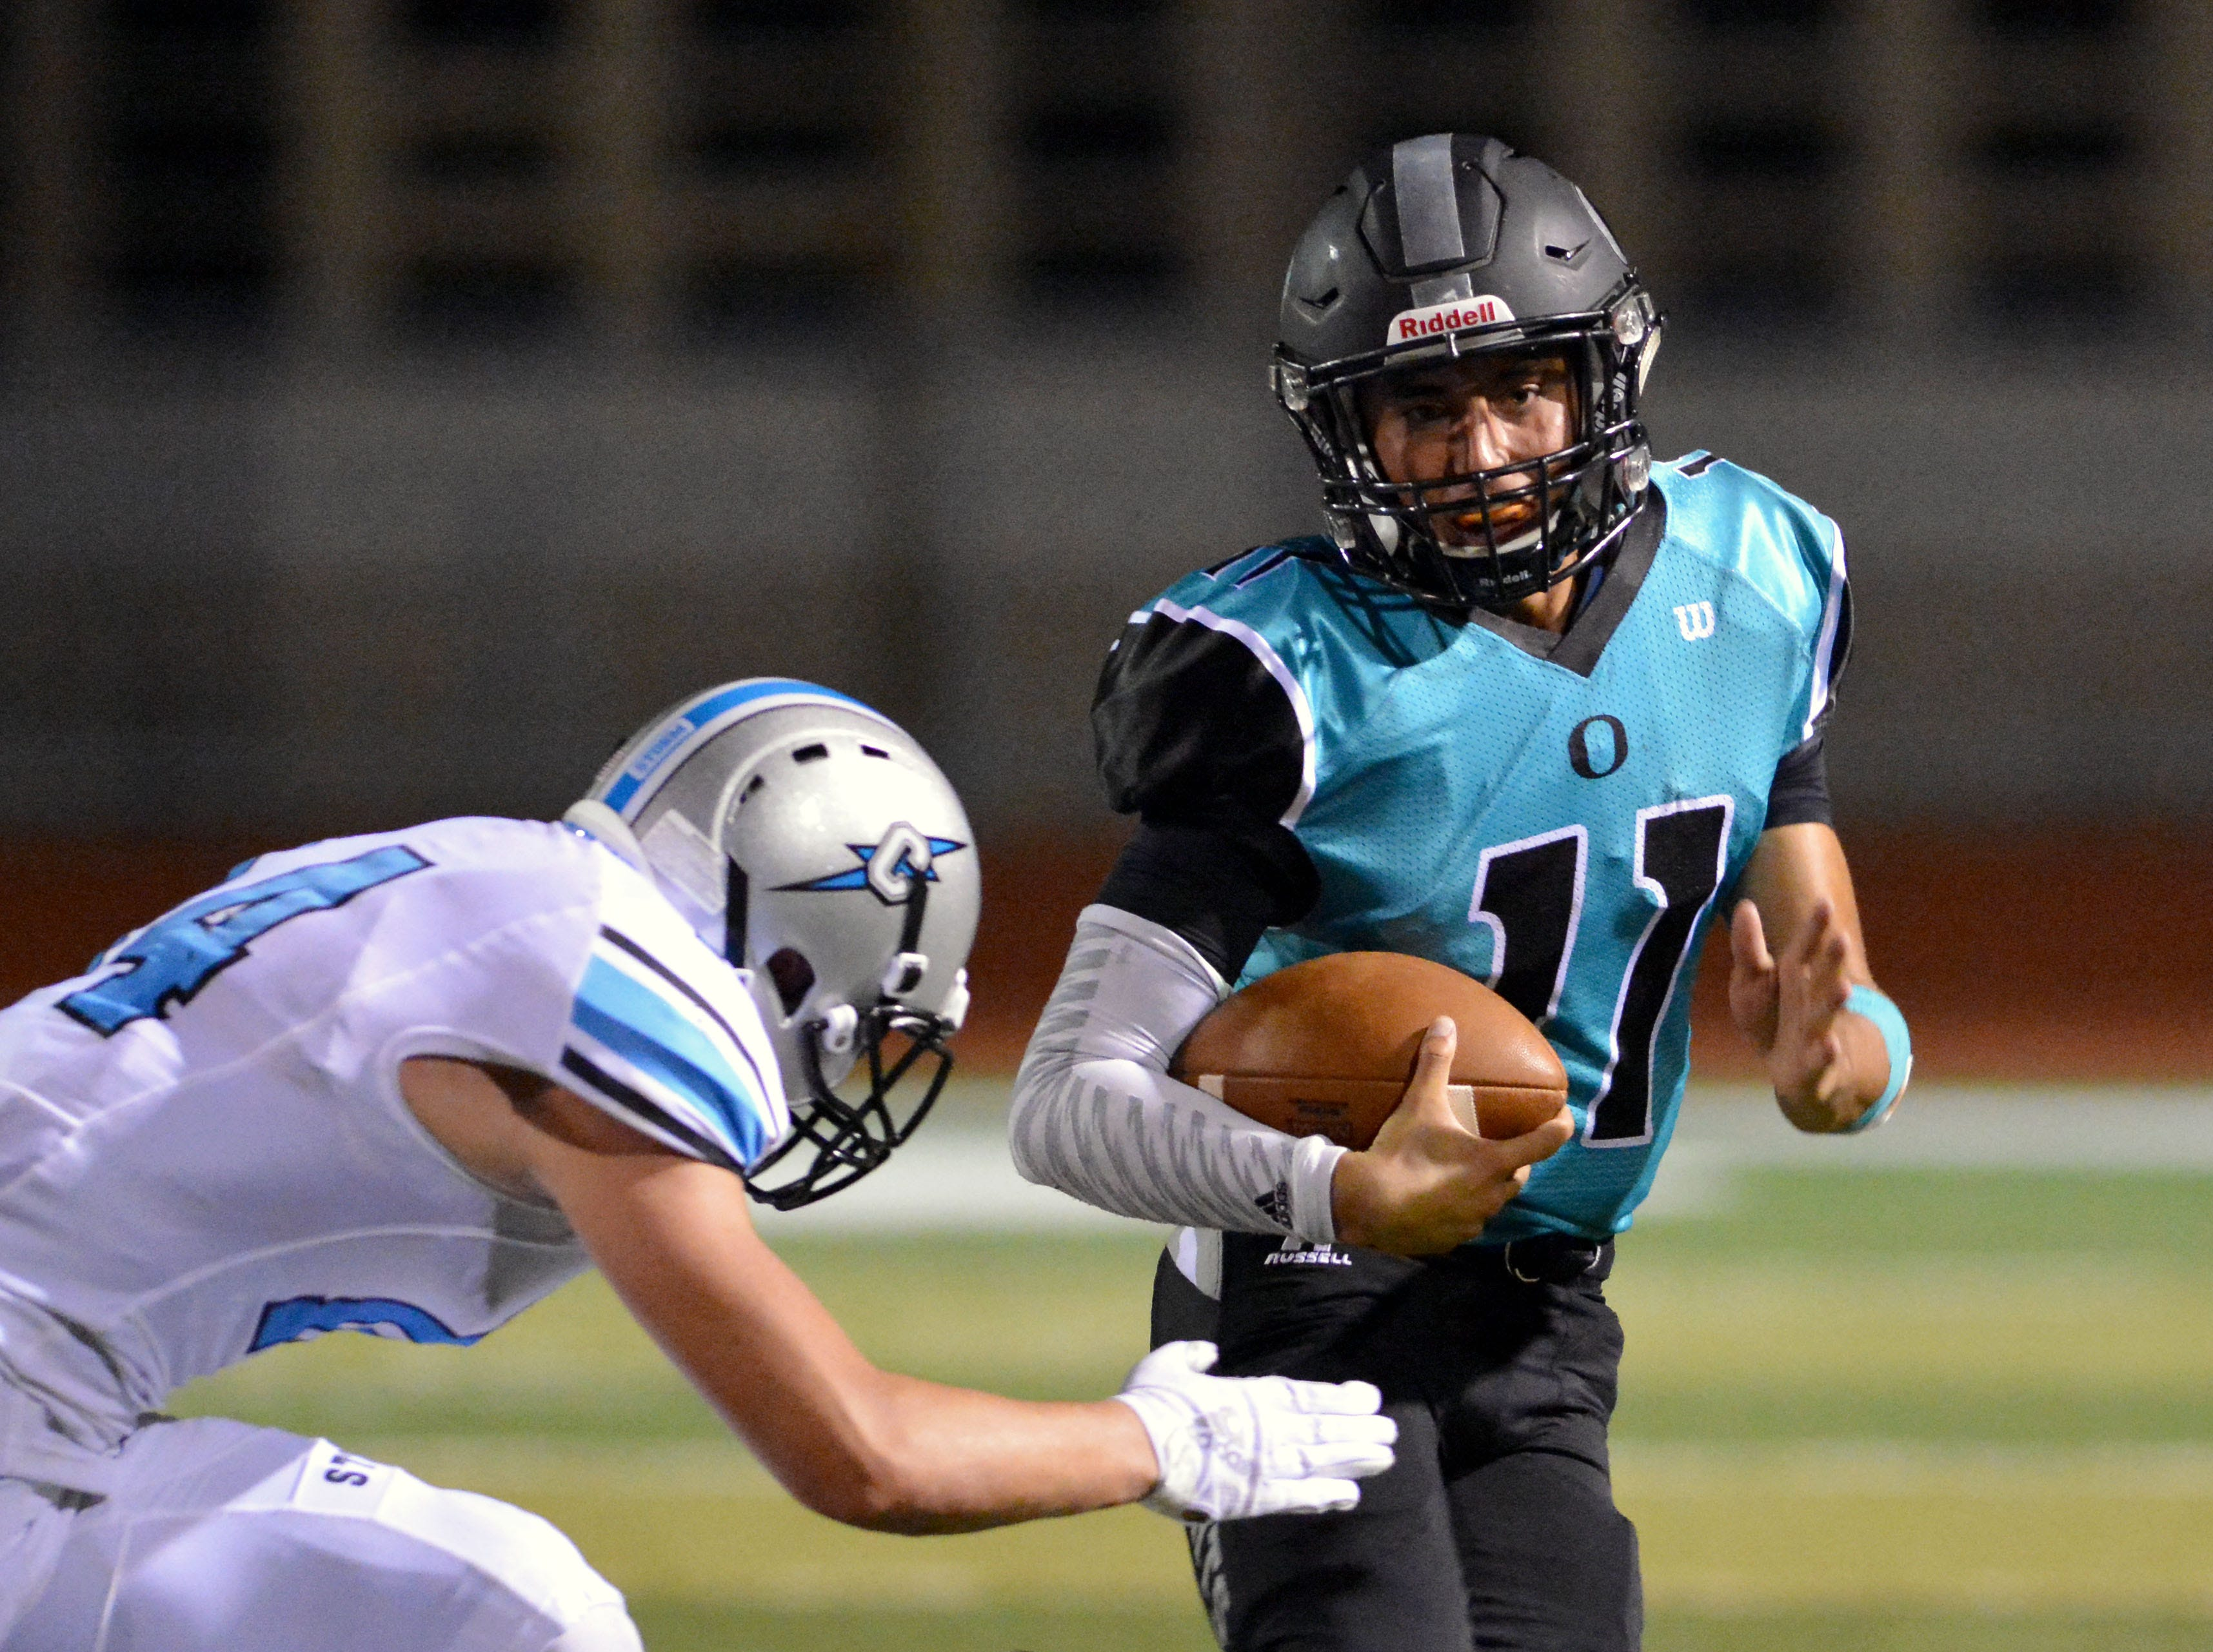 Oñate wide receiver Jayden Diaz runs for extra yards after catching a pass on Friday night against Cleveland at the Field of Dreams.